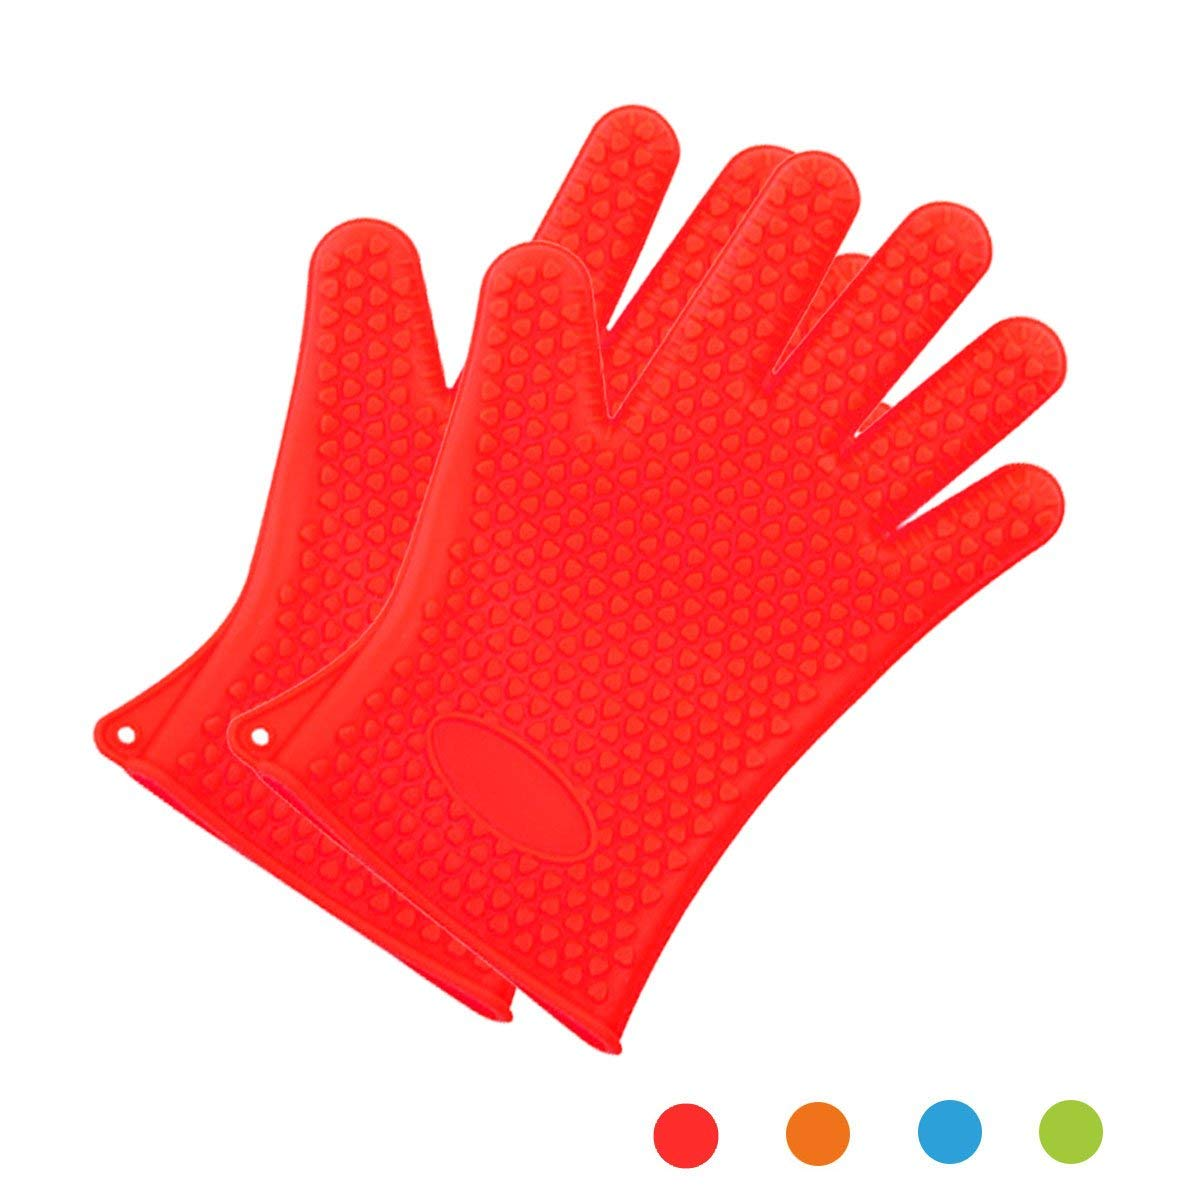 ANPI Silicone Cooking & Grilling Gloves - Heat Resistant Oven Mitt for Grilling, BBQ, Baking –Versatile Non-Slip Potholders - Insulated & Waterproof - Full Finger, Hand, Wrist Protection Red